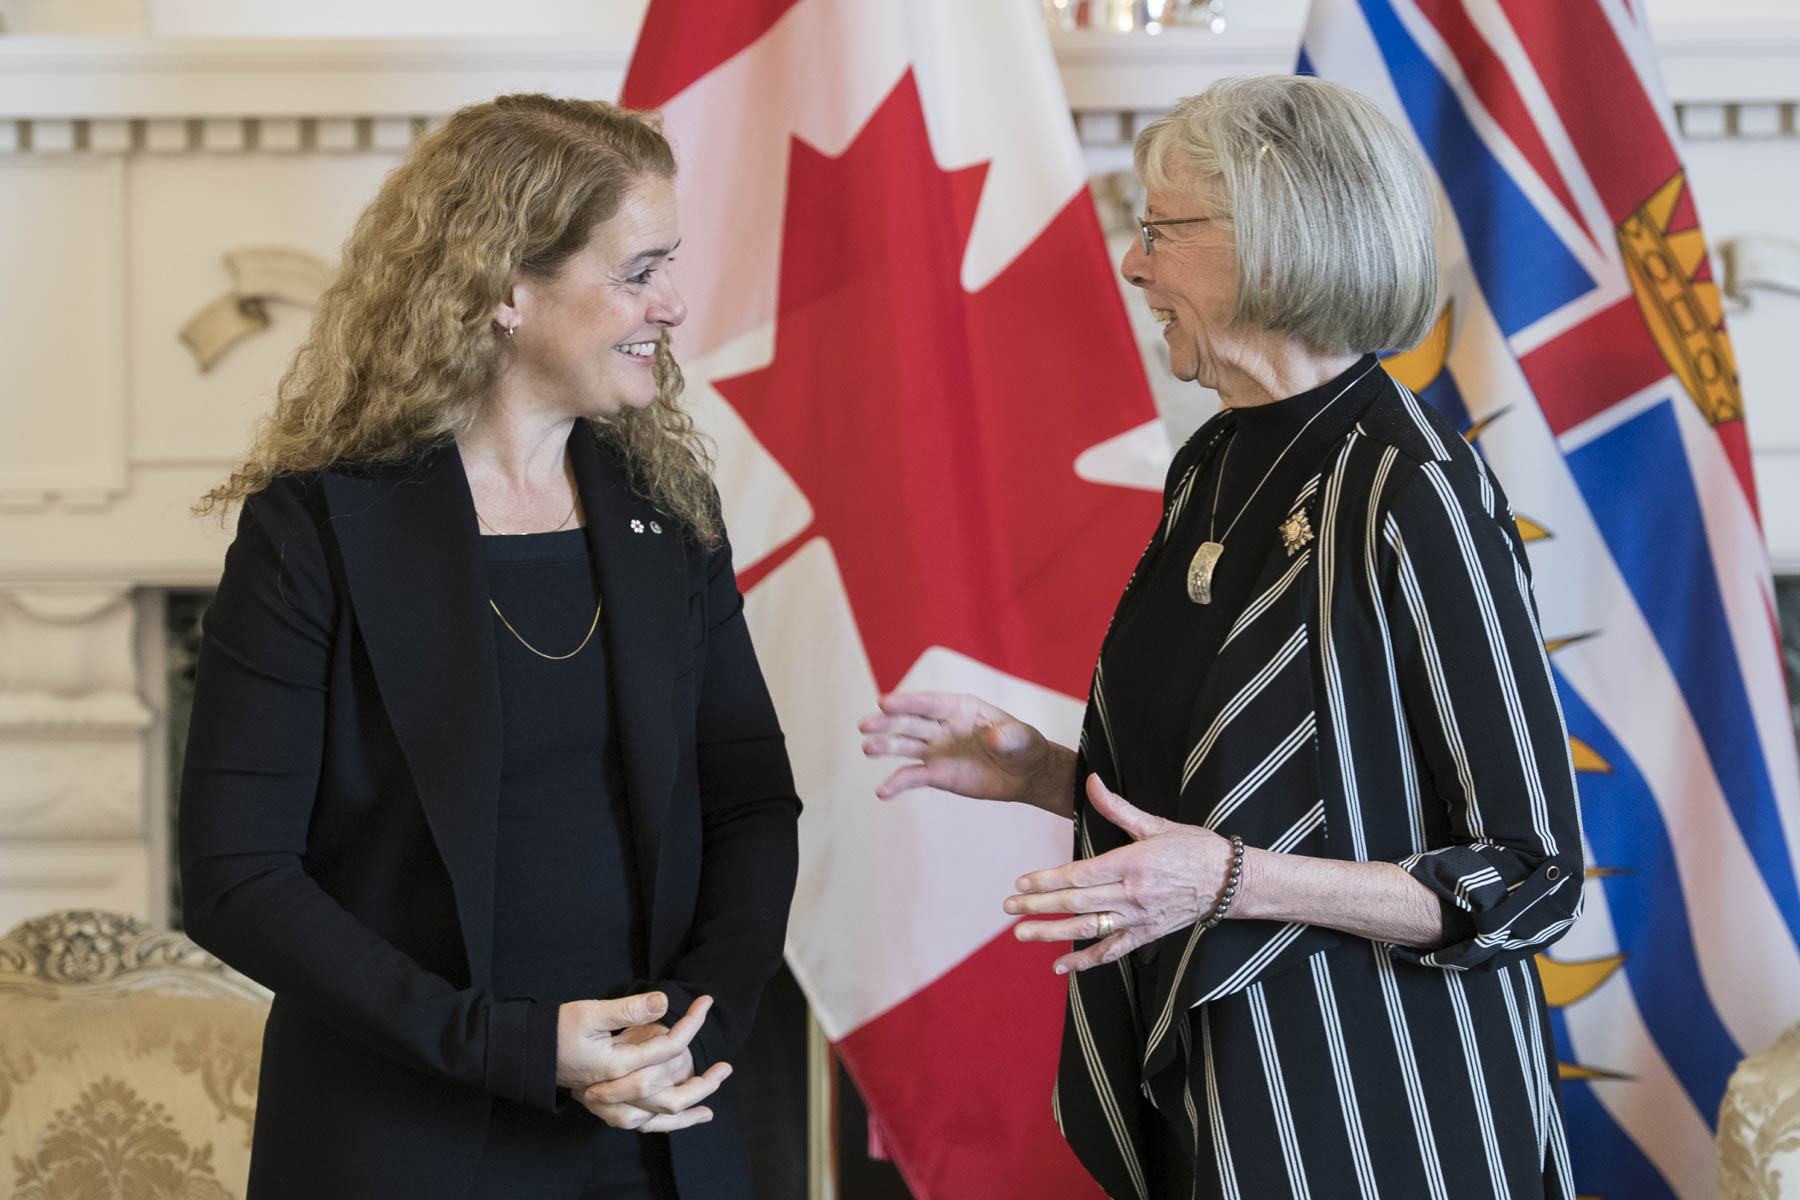 Upon her arrival in British Columbia, Governor General Julie Payette proceeded to Government House where she was greeted by Her Honour the Honourable Judith Guichon, Lieutenant Governor of British Columbia.